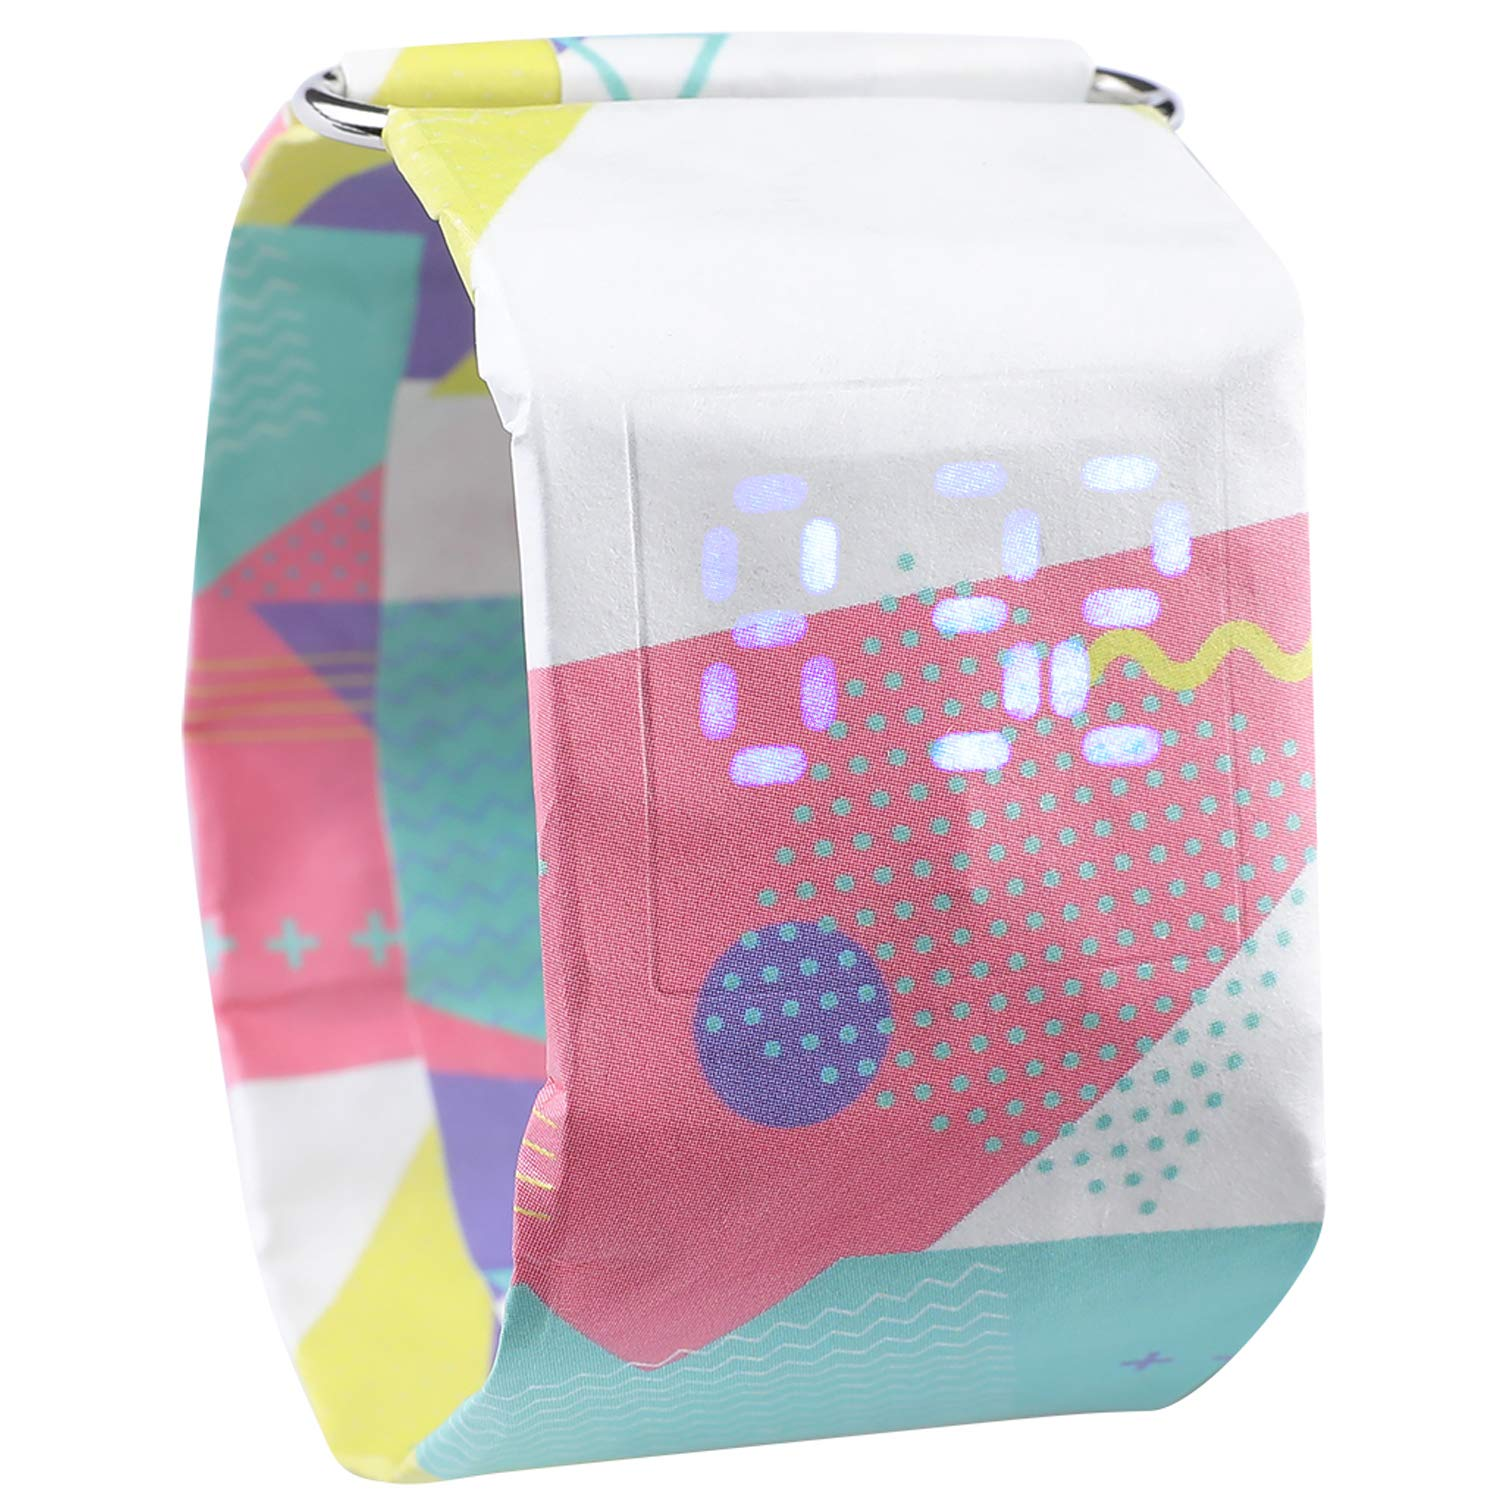 Paper Watch, Waterproof Colorful LED Handmade Digital Wrist Watch Super Light Durable with Magnetic Best Gift for Men,Women,Girls,Boys,Students